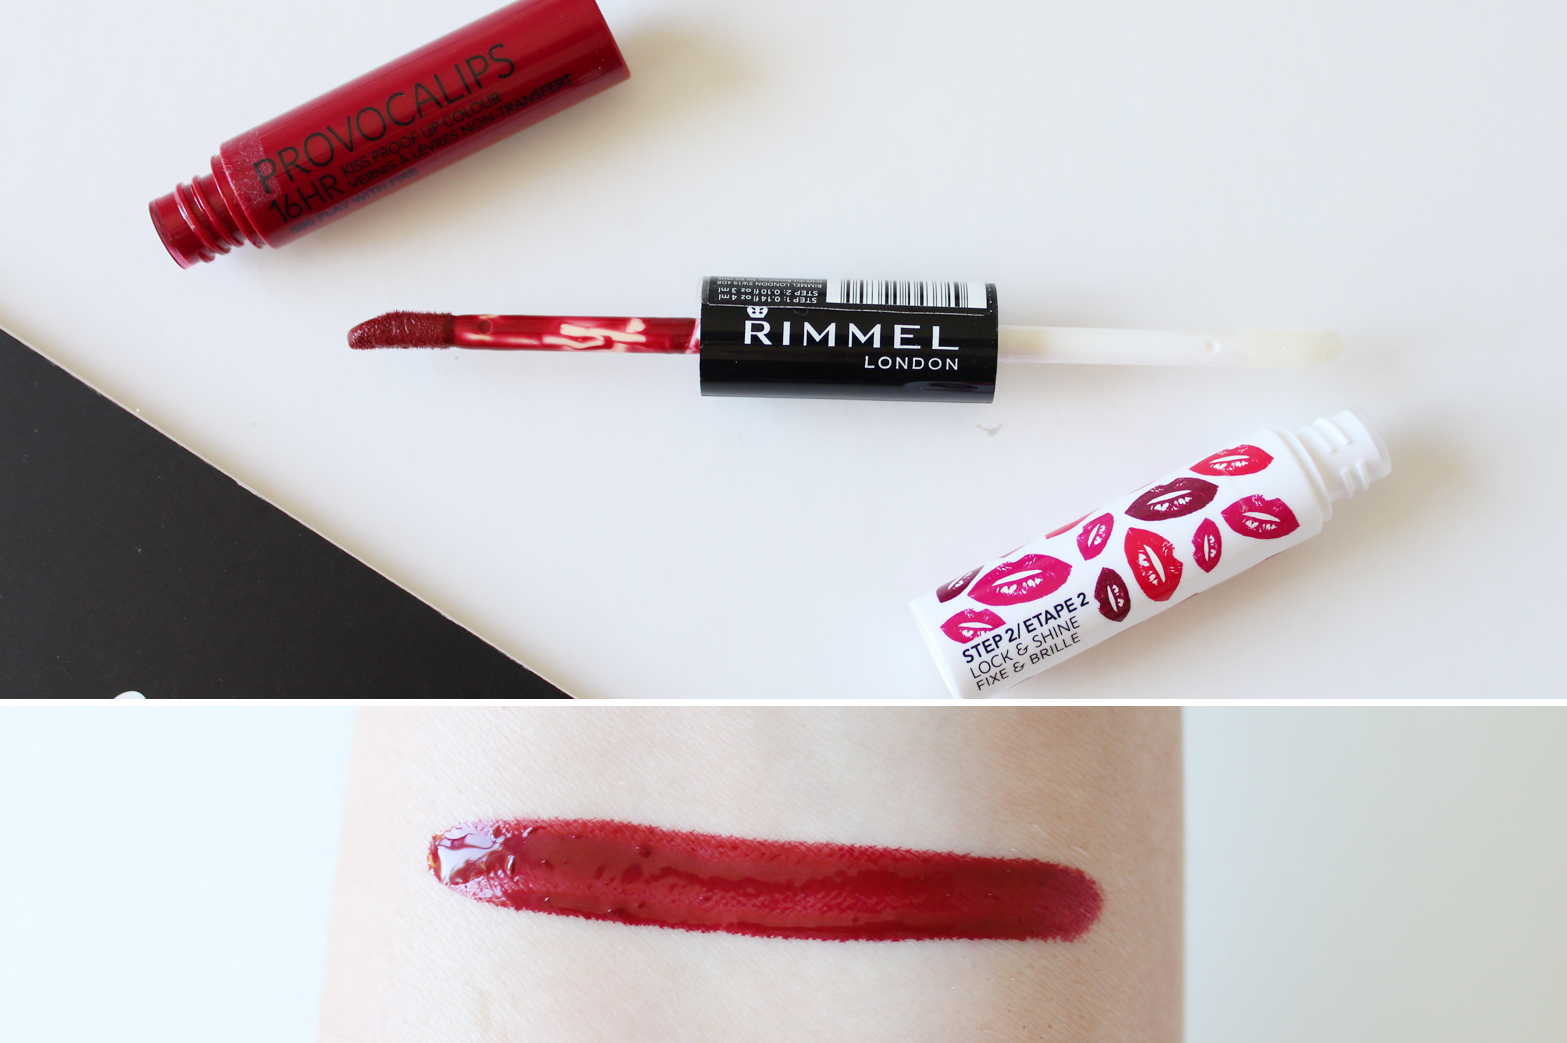 RIMMEL LONDON | 3 for 2 Haul - Review + Swatches - CassandraMyee